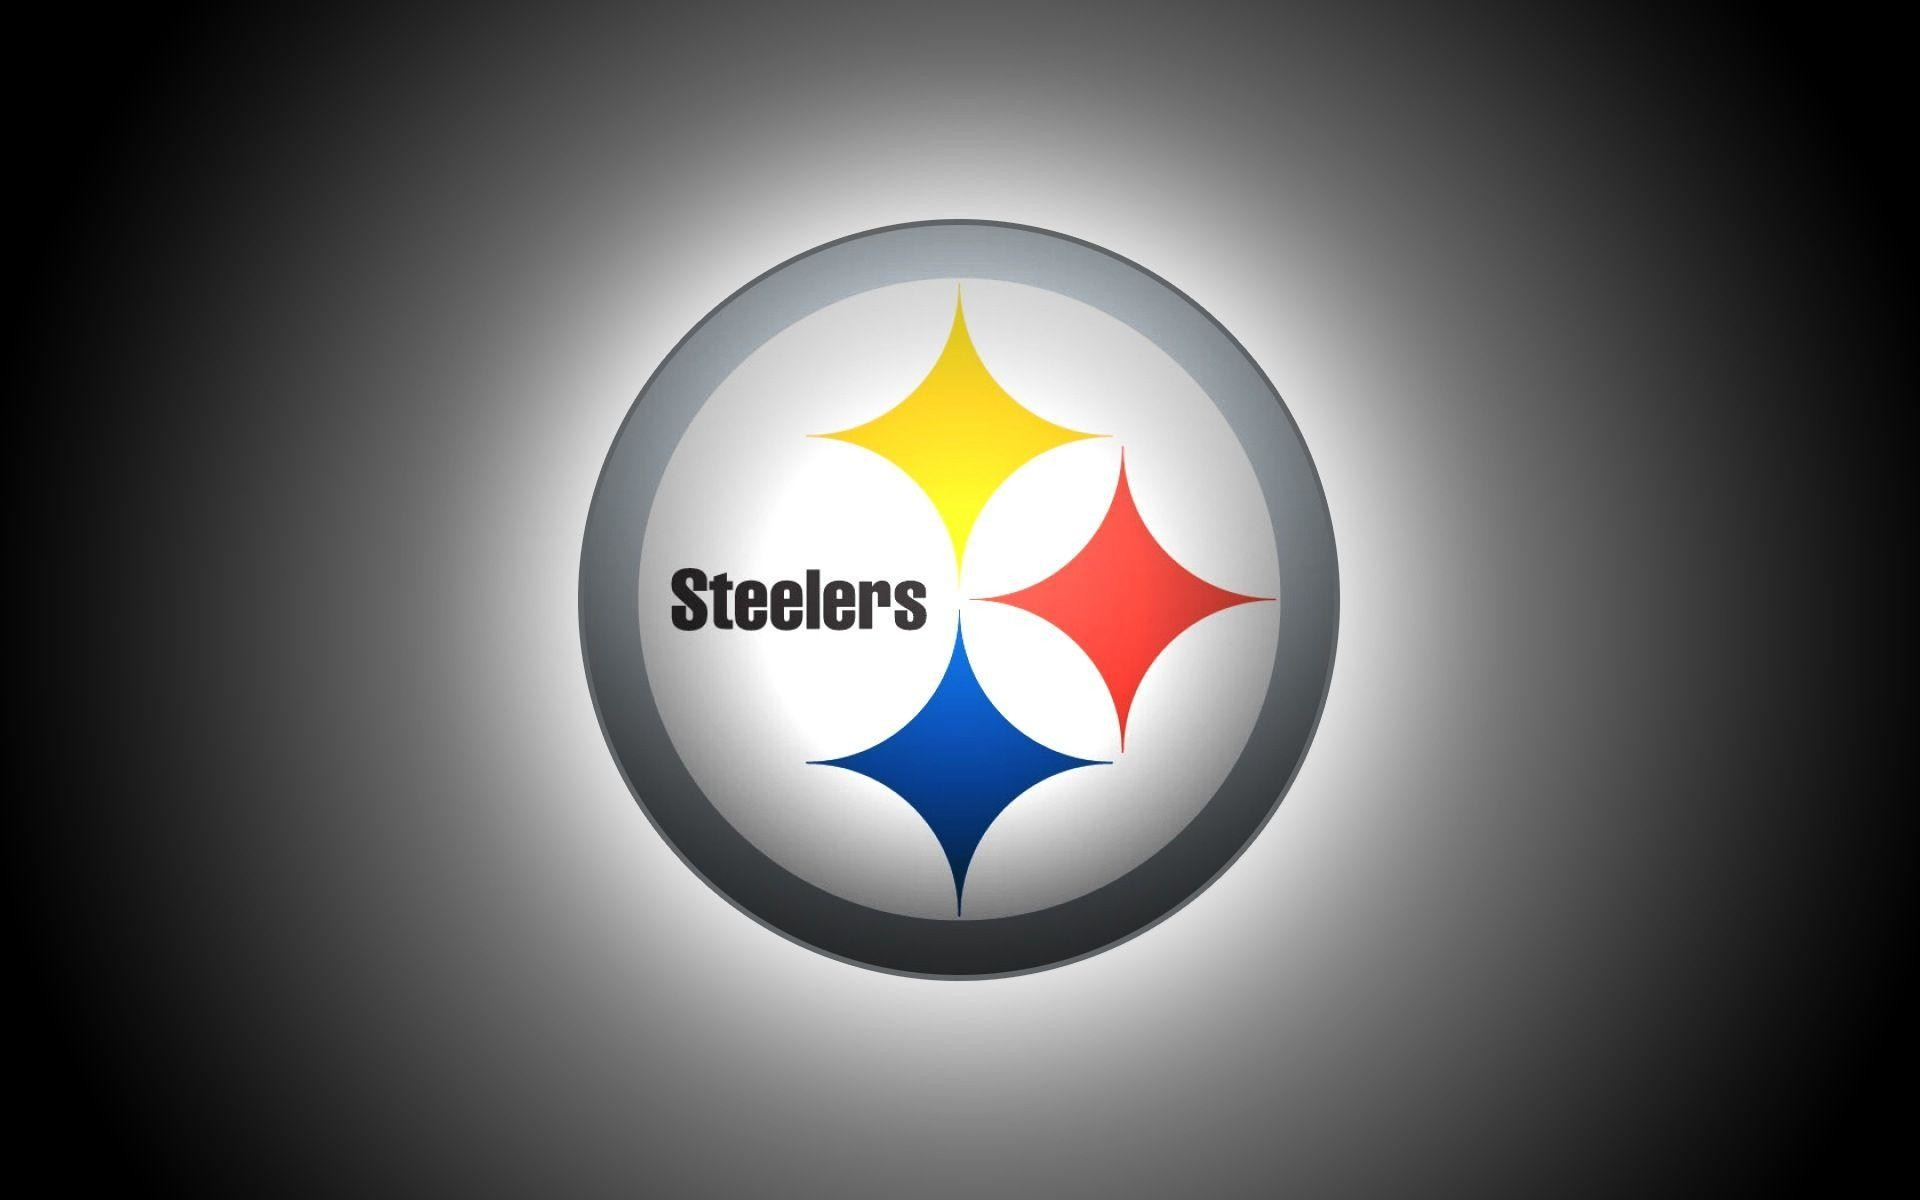 Page 797 | Kelly clarkson photo , Wallpaper pittsburgh steelers hd .